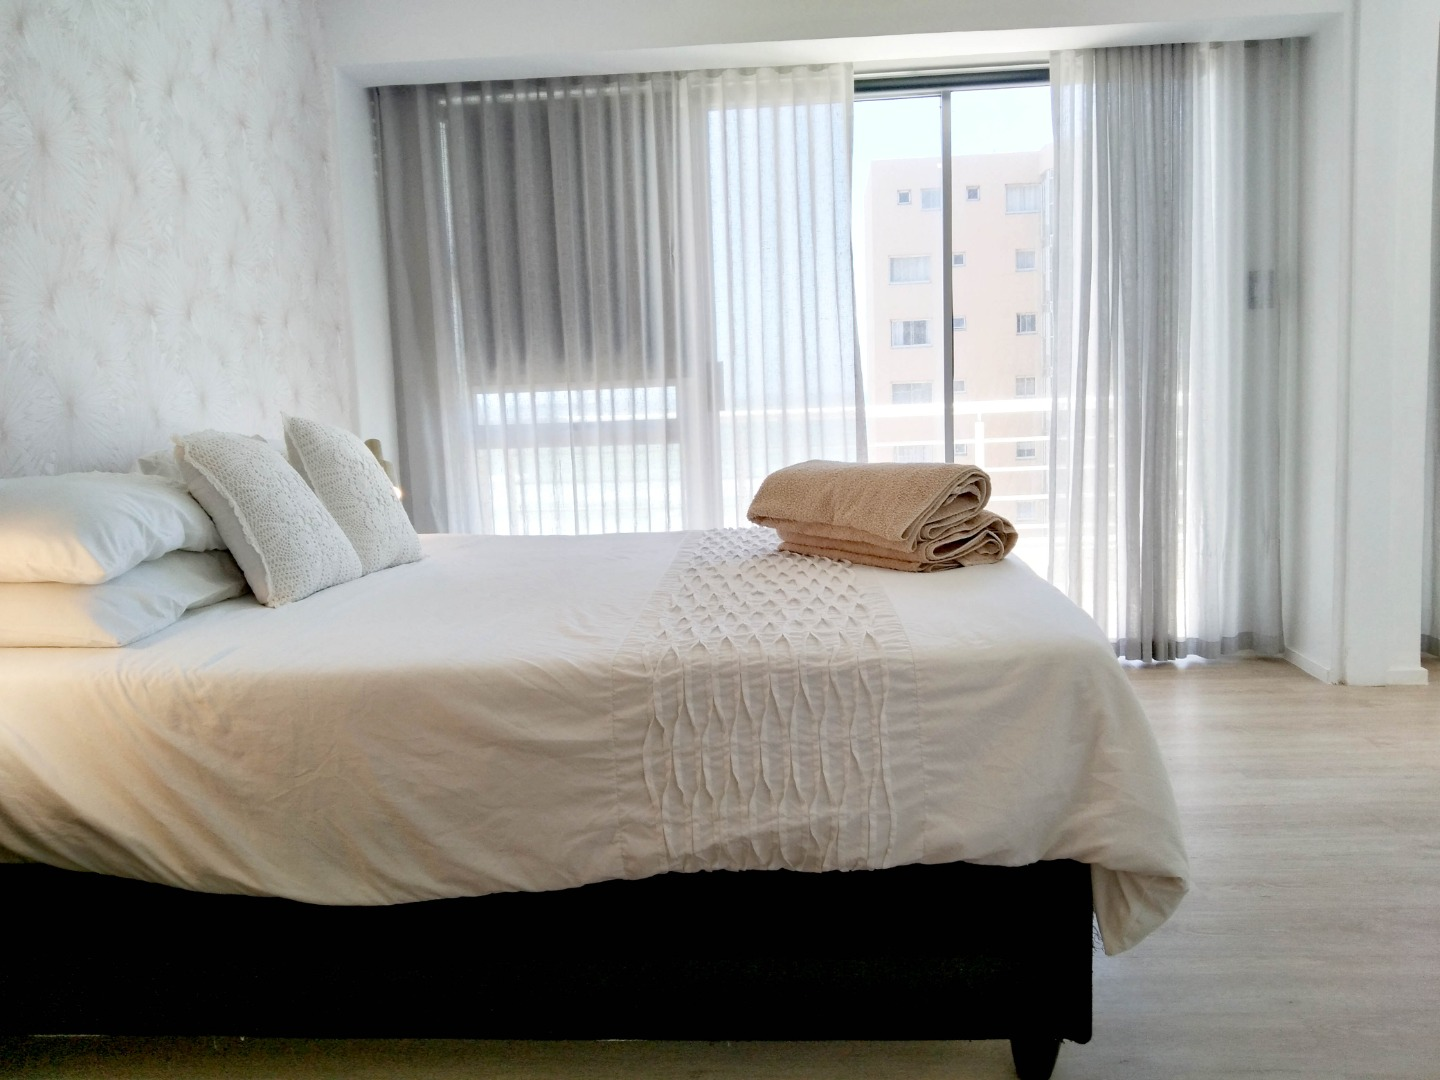 3 Bedroom Apartment / Flat For Sale in Bloubergrant